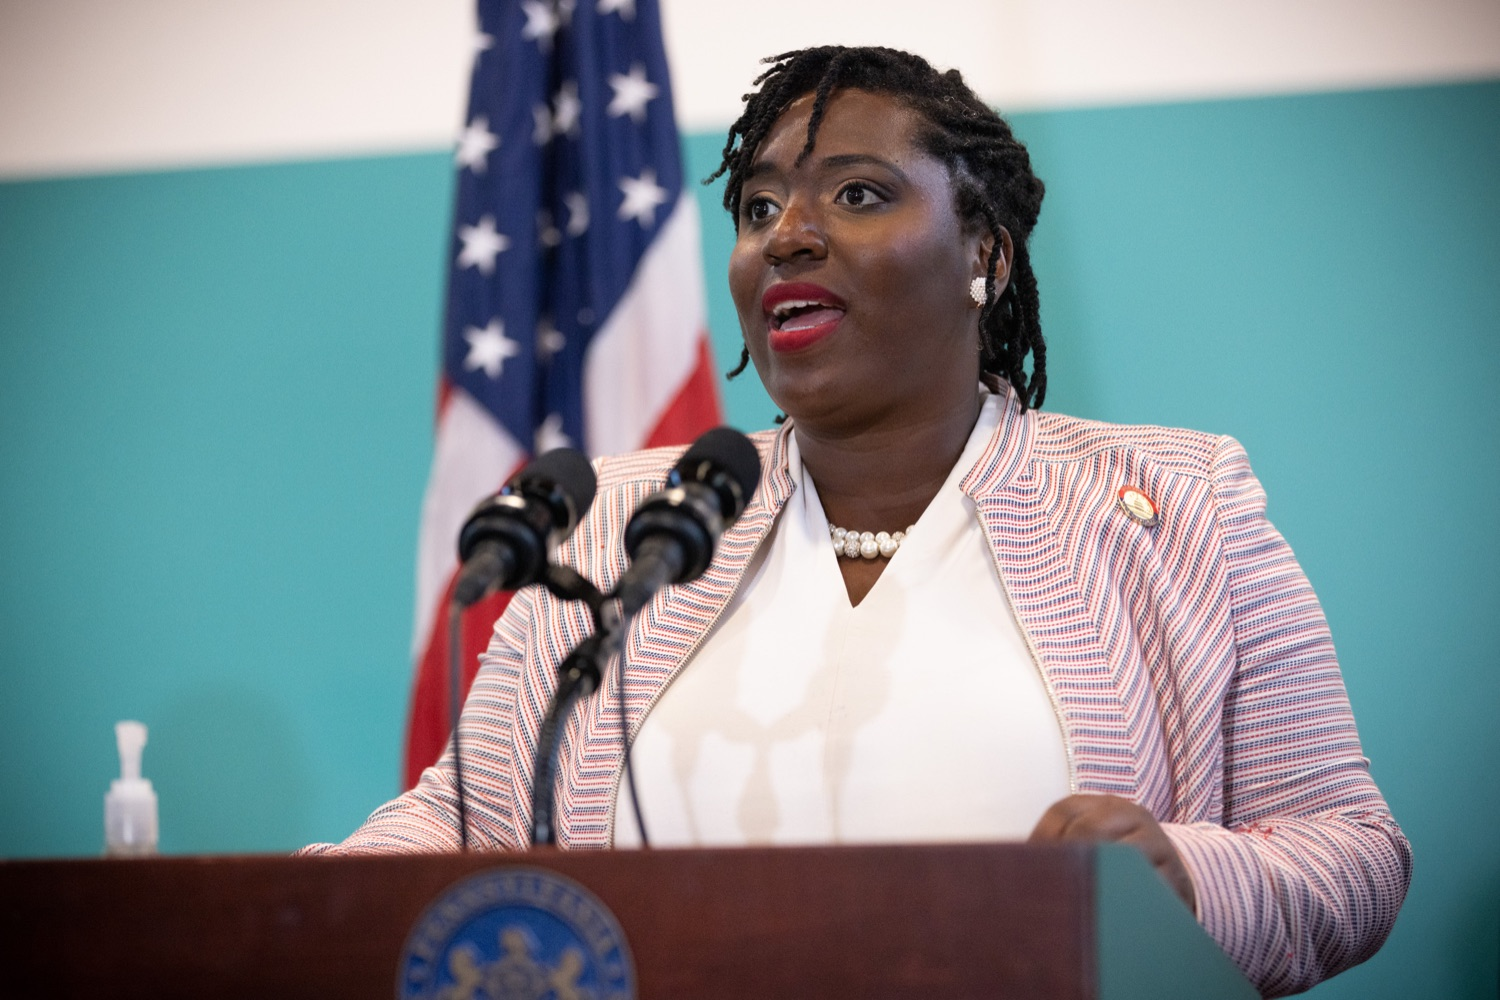 """<a href=""""https://filesource.wostreaming.net/commonwealthofpa/photo/18815_gov_voterRights_dz_002.jpg"""" target=""""_blank"""">⇣Download Photo<br></a>House Democratic Caucus Leader Joanna McClinton, Representative from Delaware and Philadelphia Counties speaking with the press.With some politicians spreading lies about our elections to divide us, Governor Tom Wolf today vowed to protect the freedom to vote and oppose legislation that would create barriers to voting and silence the voices of some Pennsylvanians. These are the same lies that led directly to the appalling assault on our U.S. Capitol and our democracy on January 6, and now, just a few short months later, the same people who fomented, encouraged, and joined that mob are again emerging to undermine the fabric of our nation.   Harrisburg, PA  June 9, 2021"""